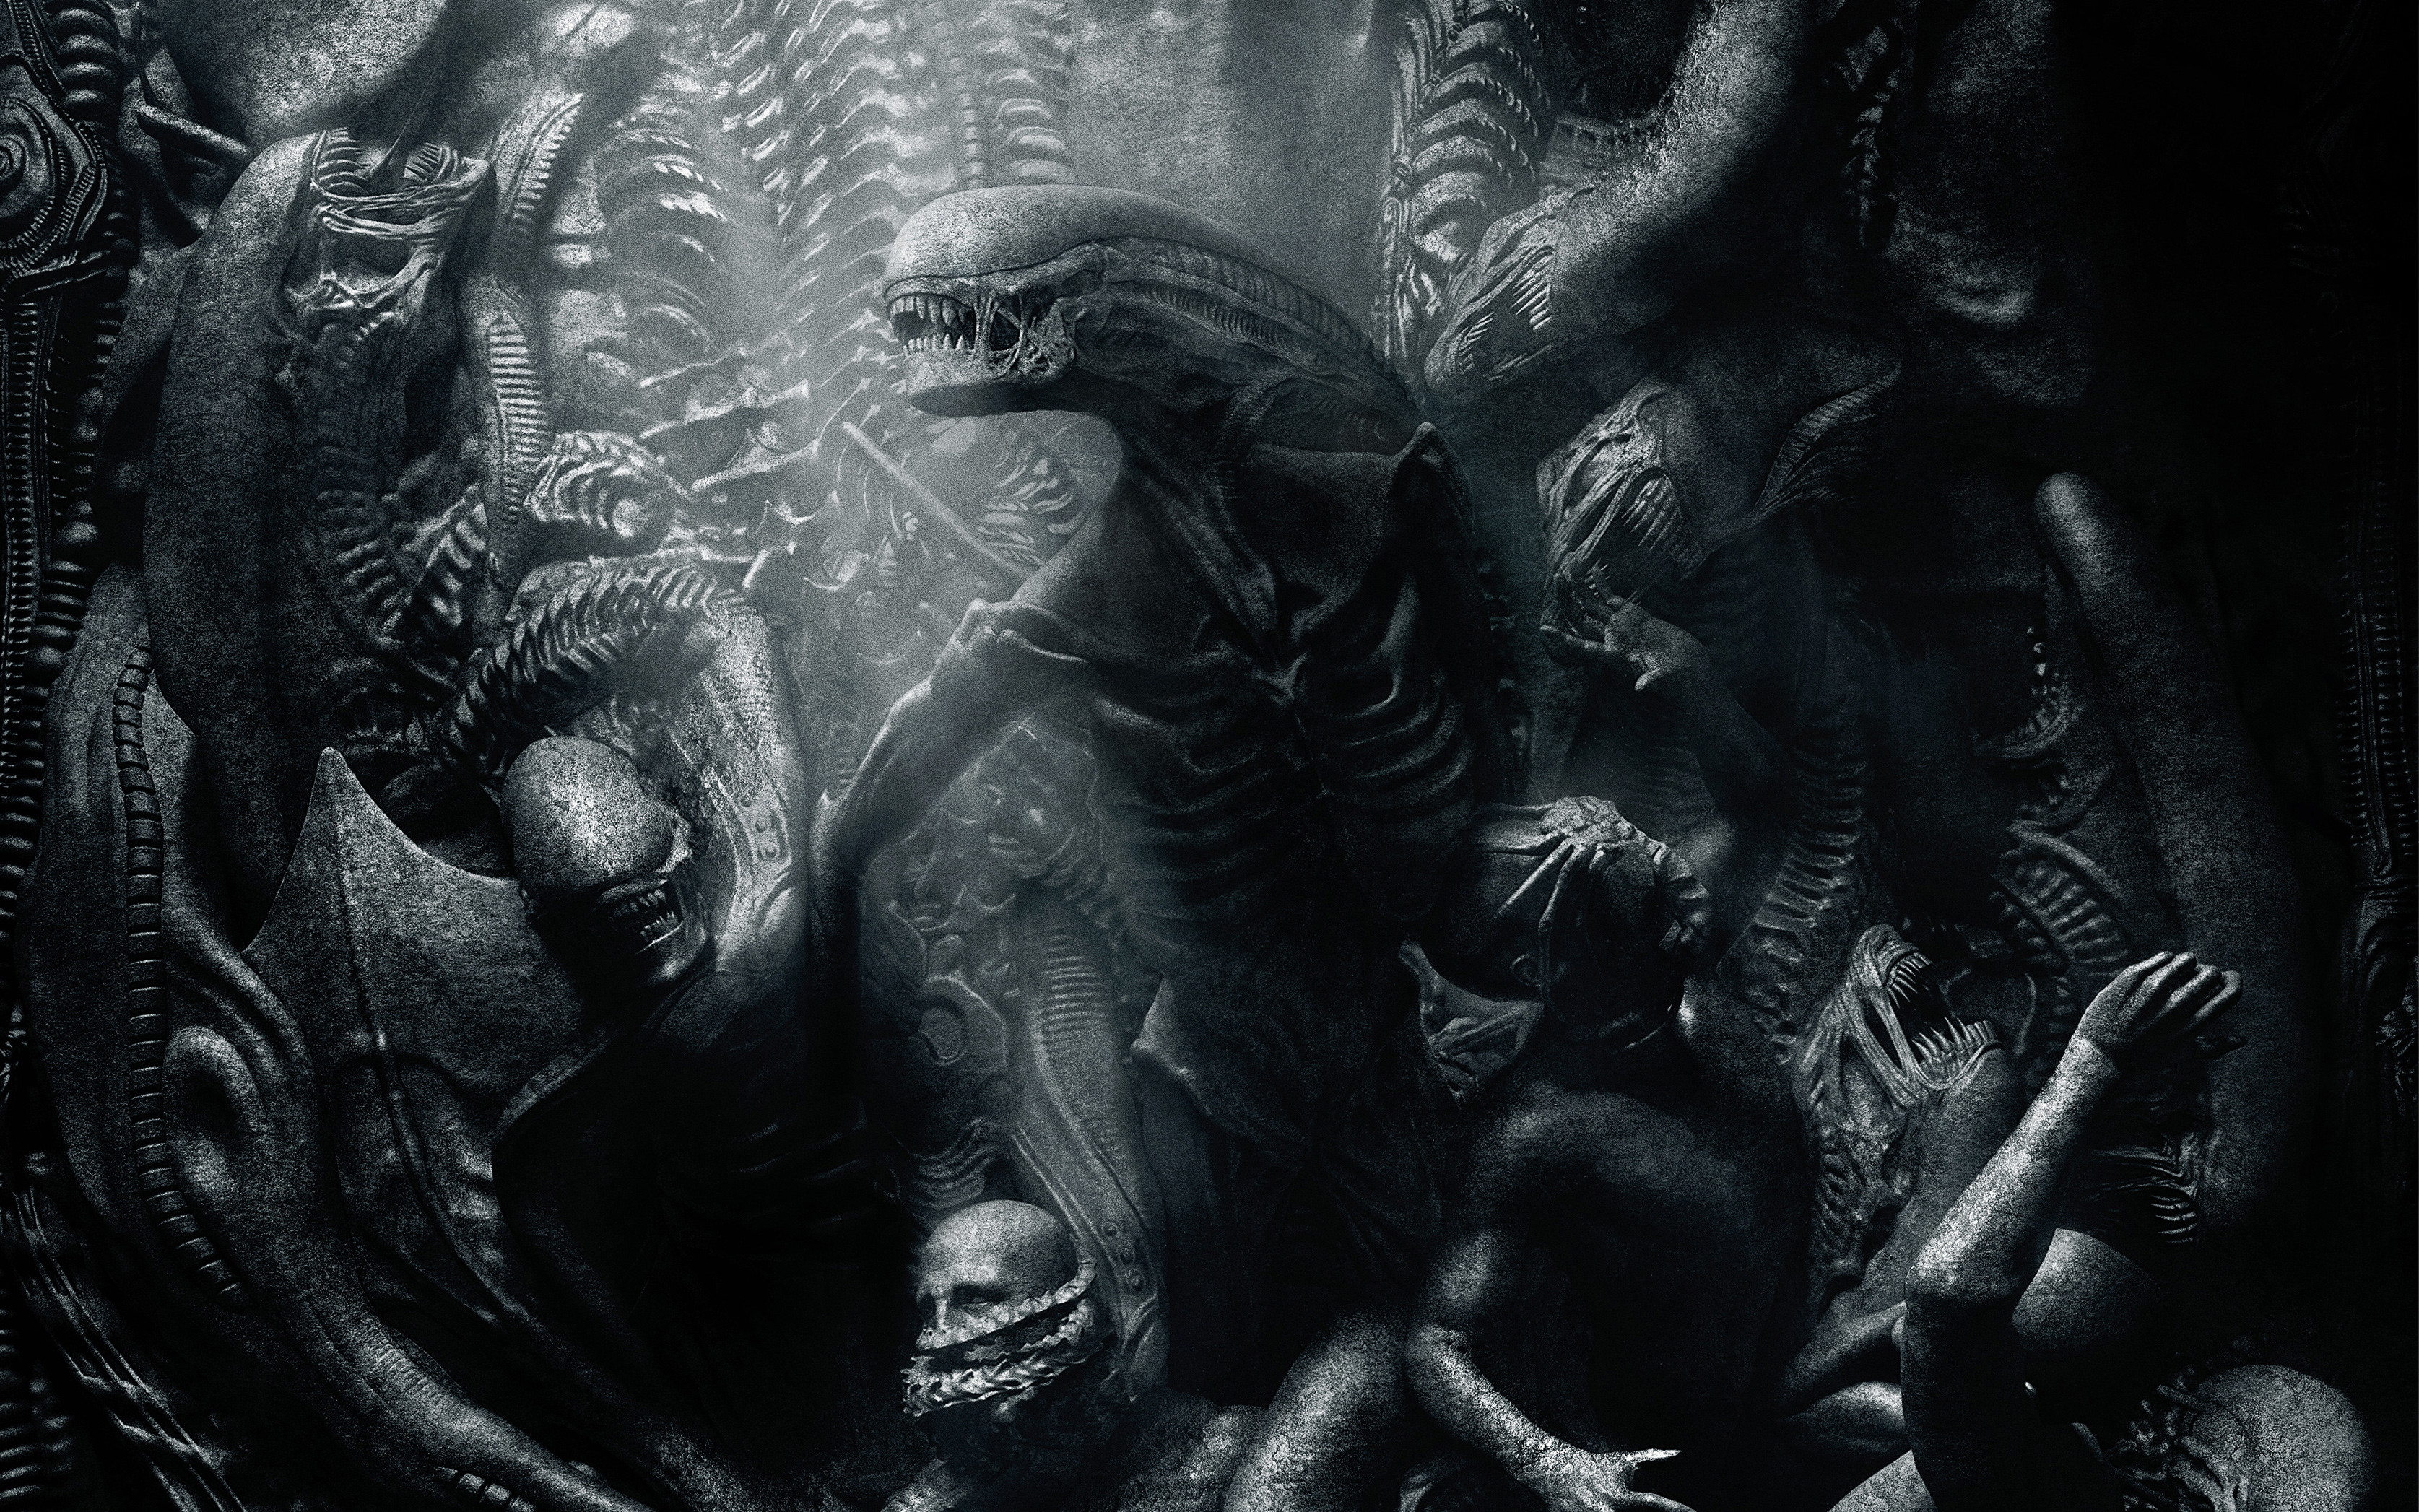 Res: 3350x2094, Tags: Movie Alien 2017 Covenant